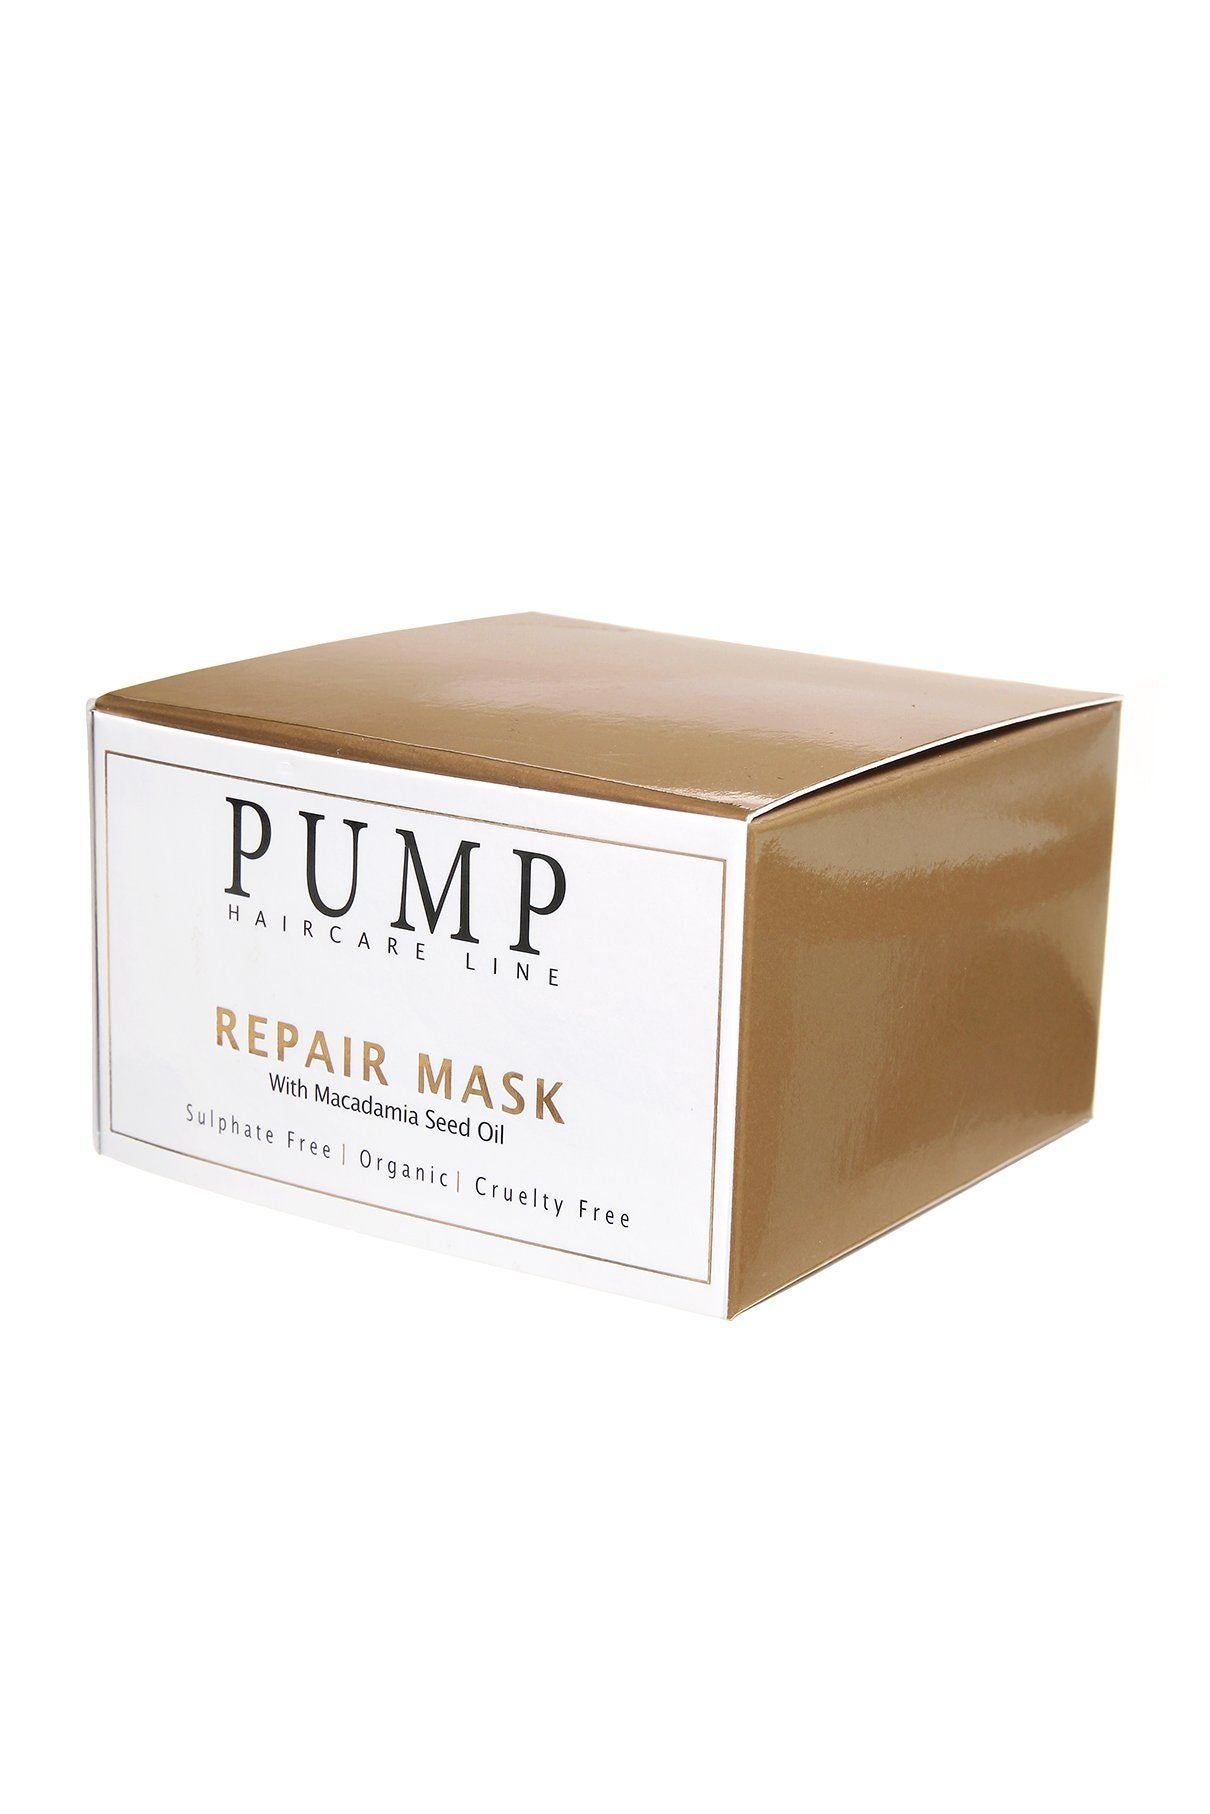 Pump Repair Mask